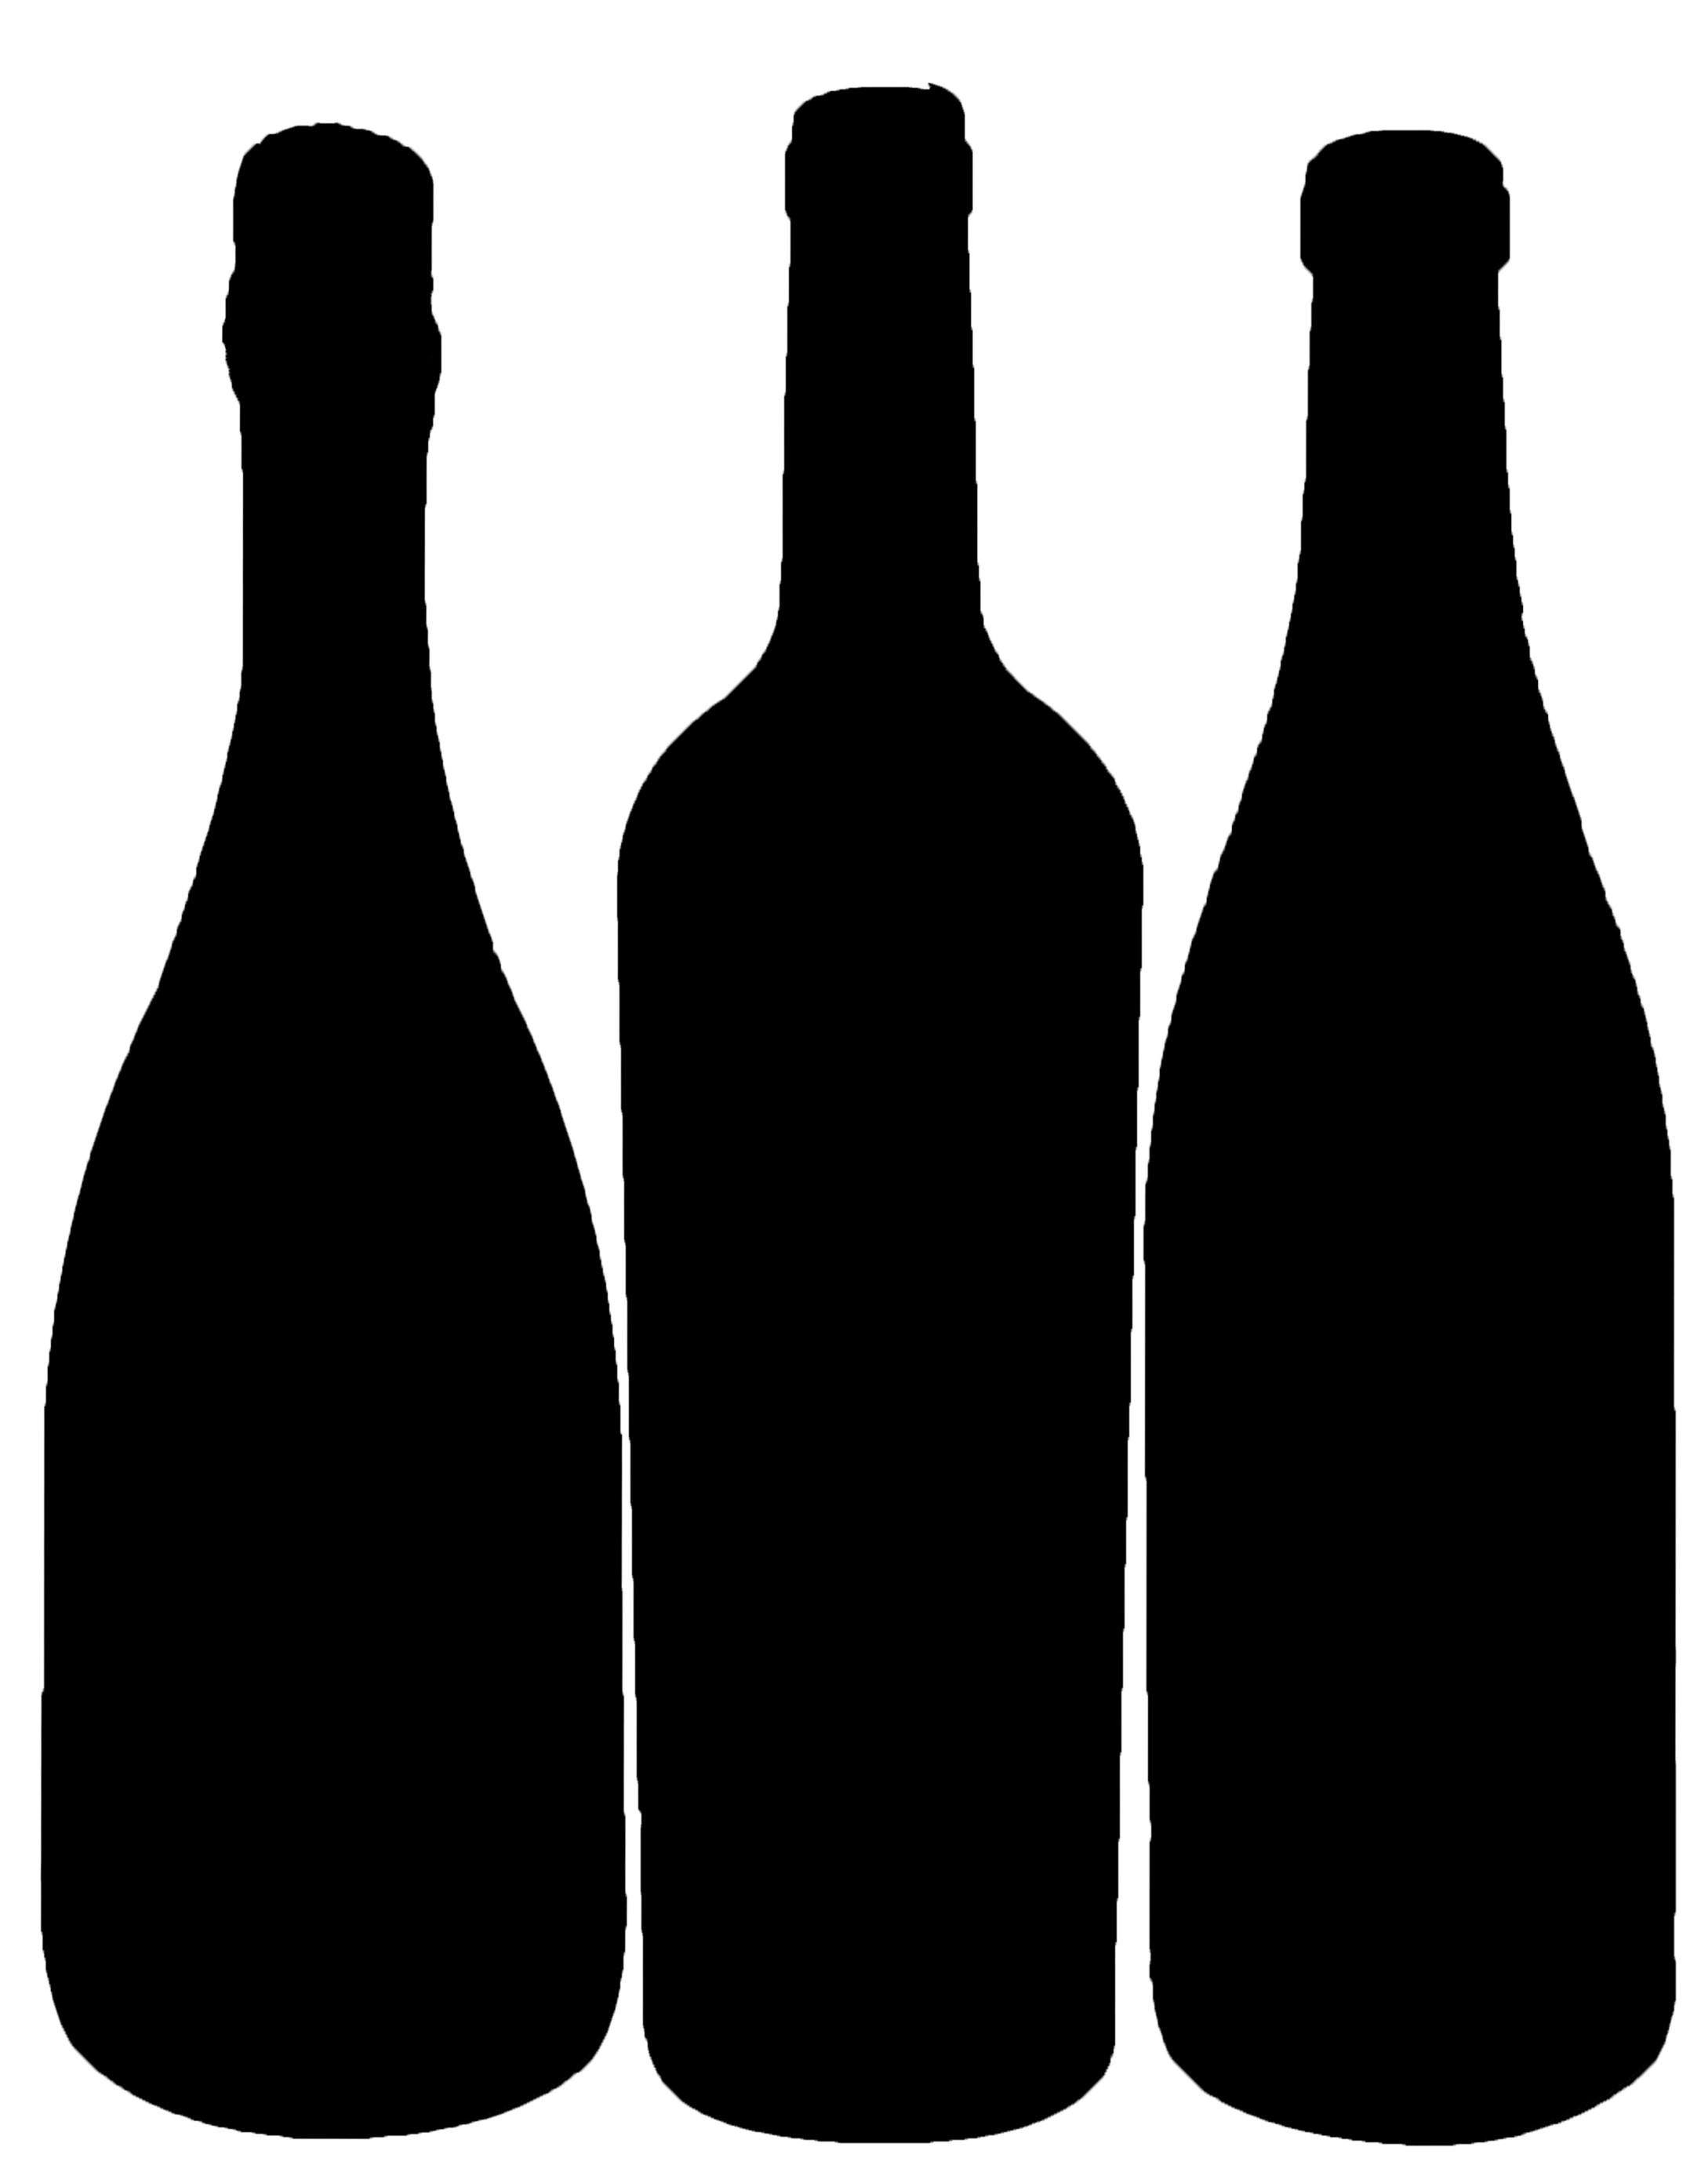 14 Beer Bottle Silhouette Free Cliparts -14 Beer Bottle Silhouette Free Cliparts That You Can Download To You-12